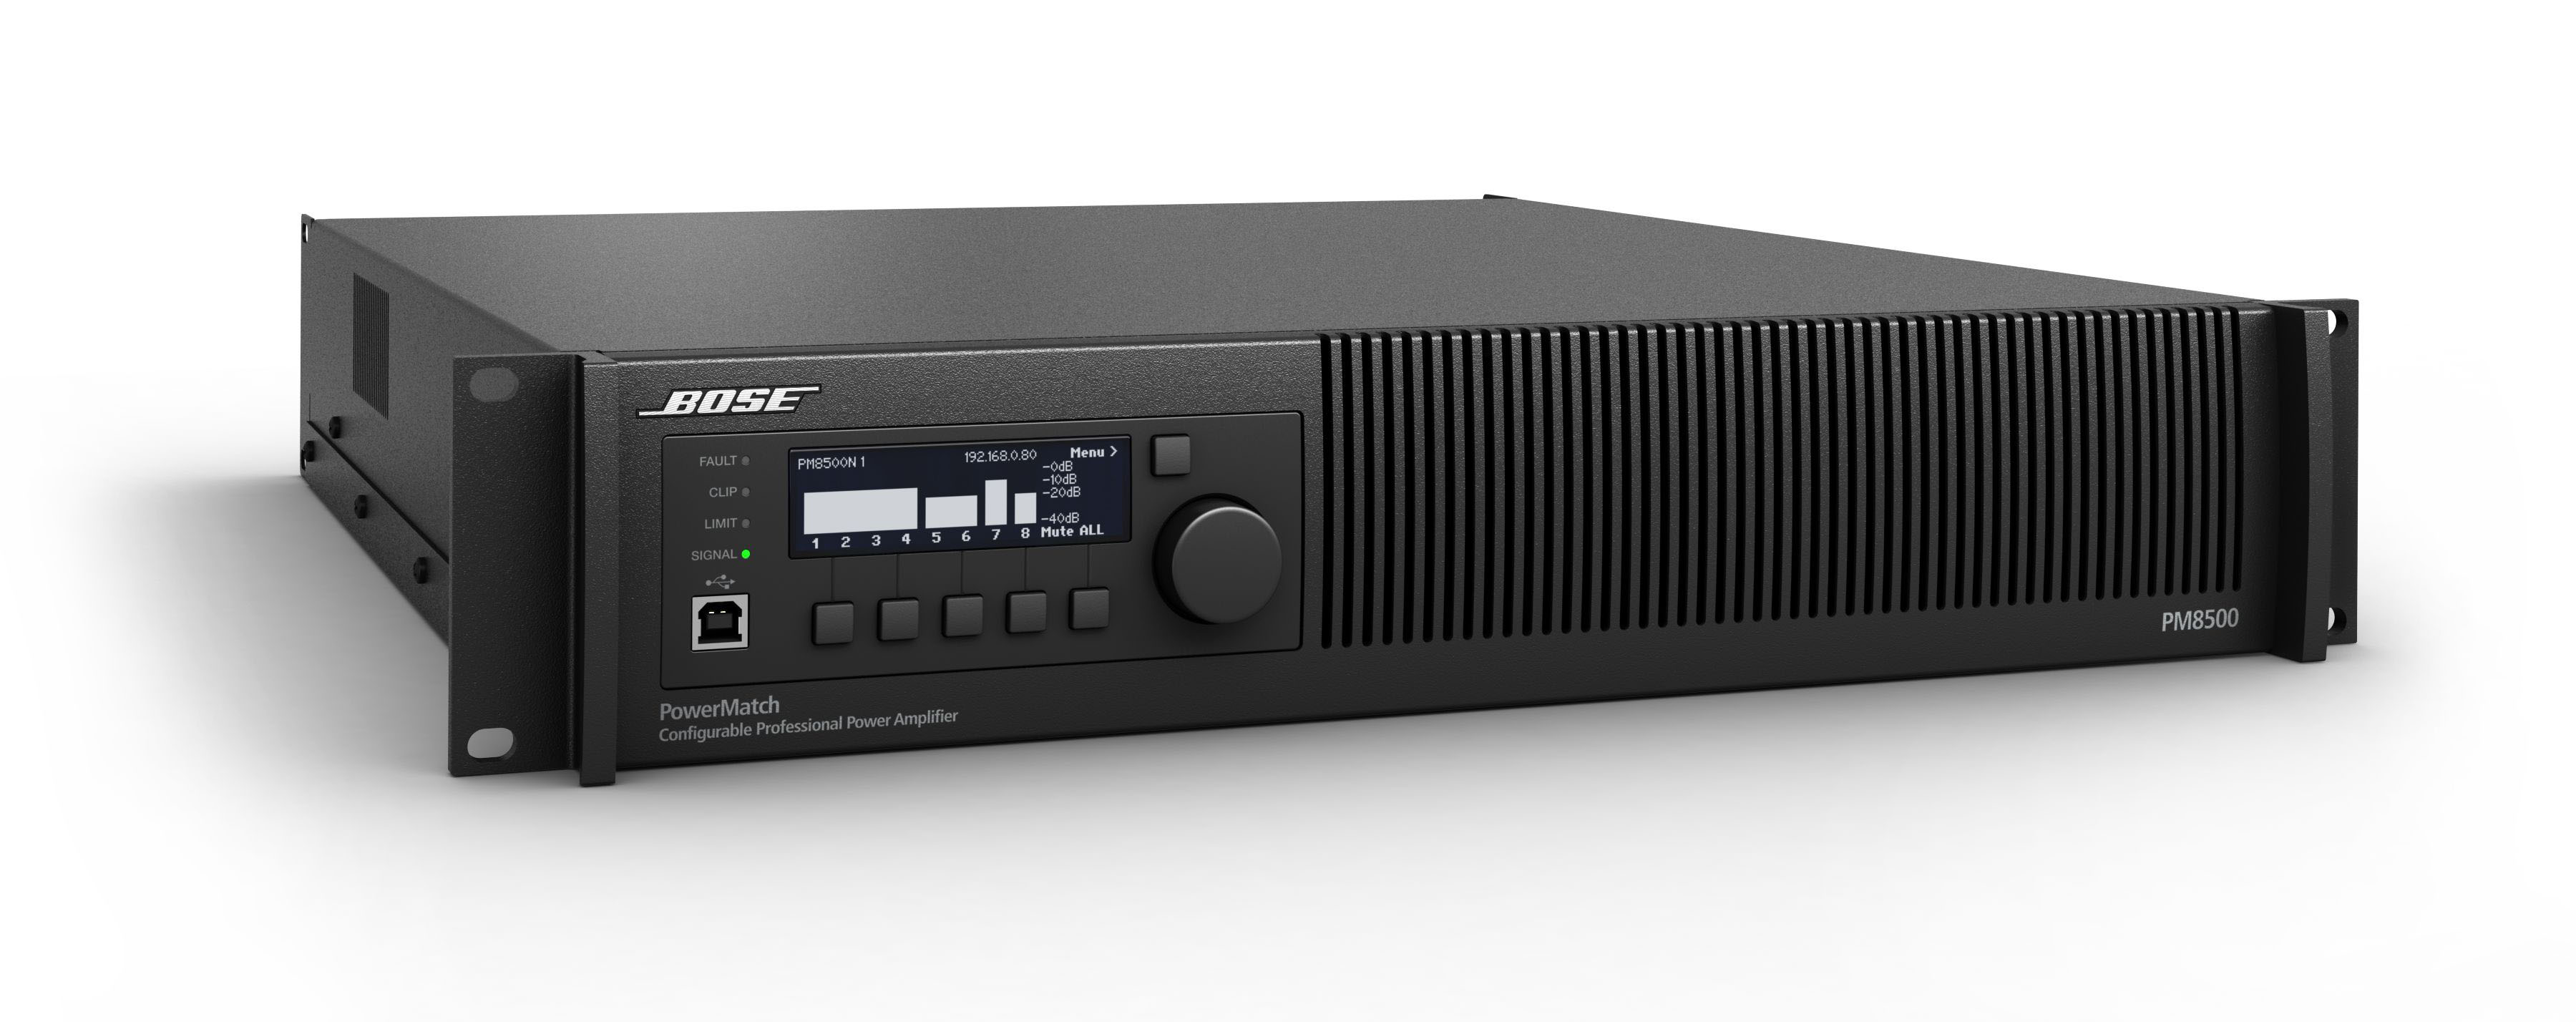 Présentation de l'amplificateur Bose PowerMatch PM8500 ControlSound Division professionnelle